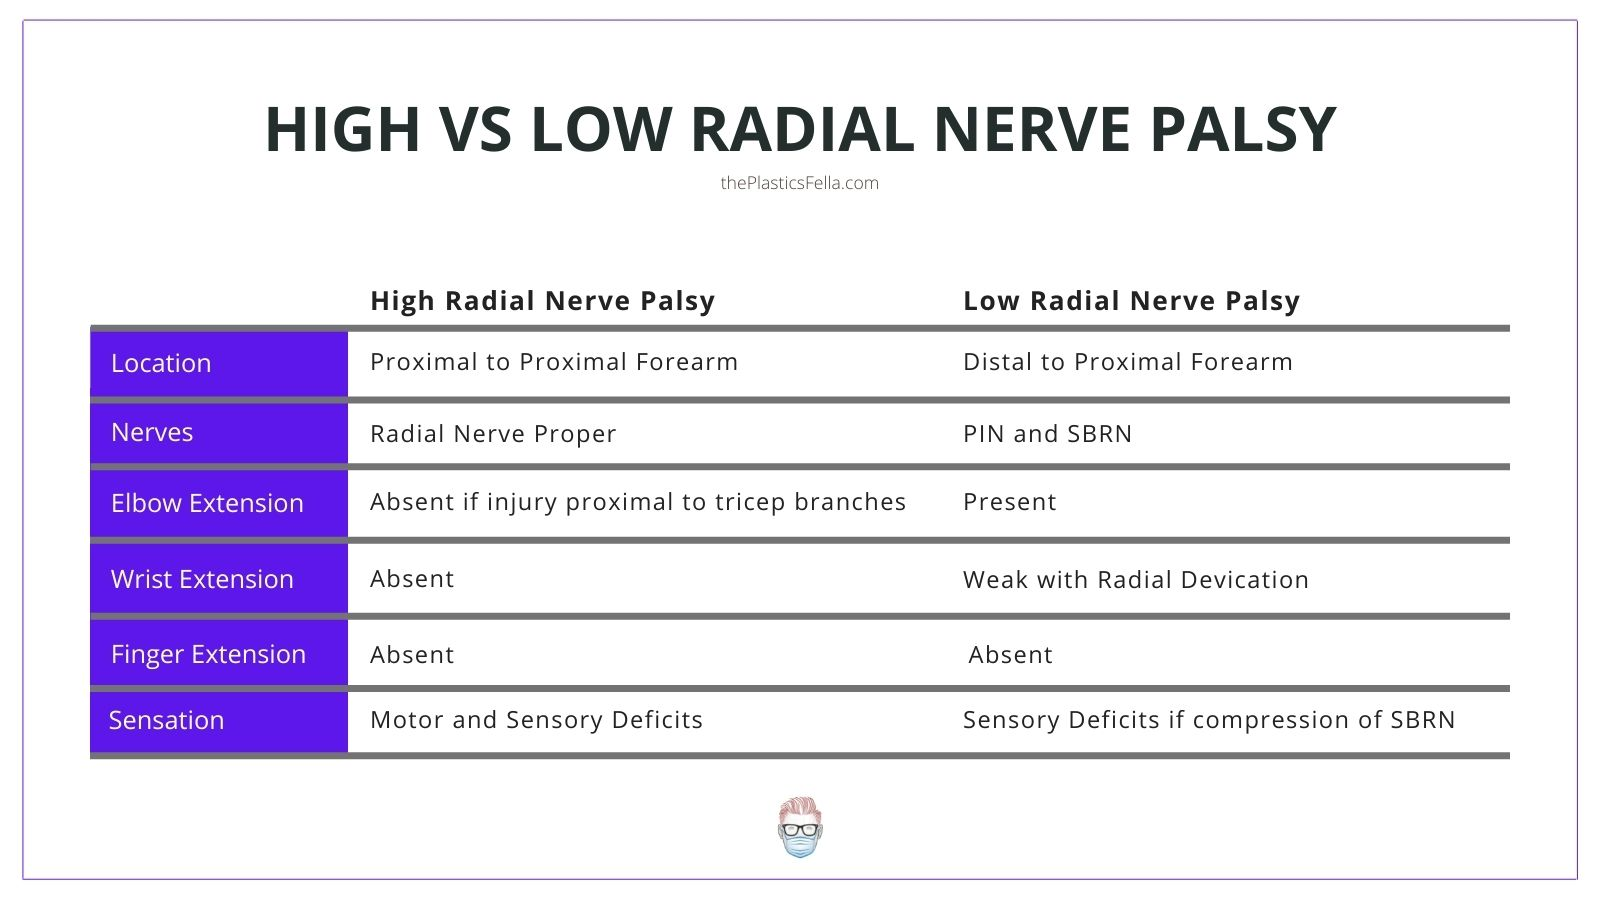 Differences between a high and low radial nerve palsy on examination